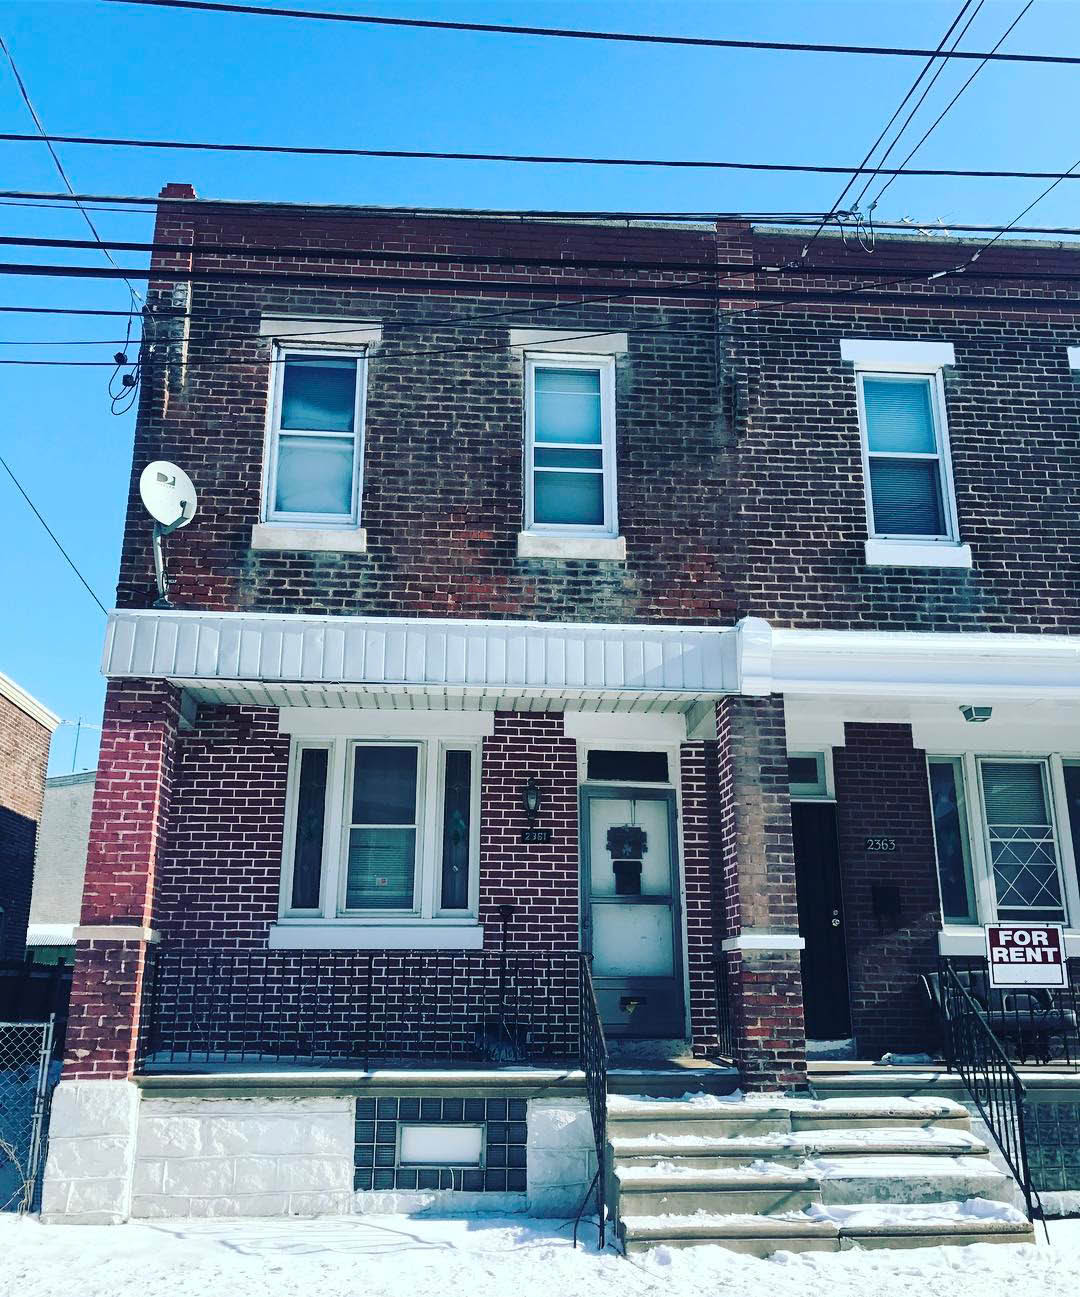 Philly Home Investor, home, sales, buying, new home, cash, philly, real estate, valpak, townhouse, flip, house flip, house remodel, Philadelphia real estate